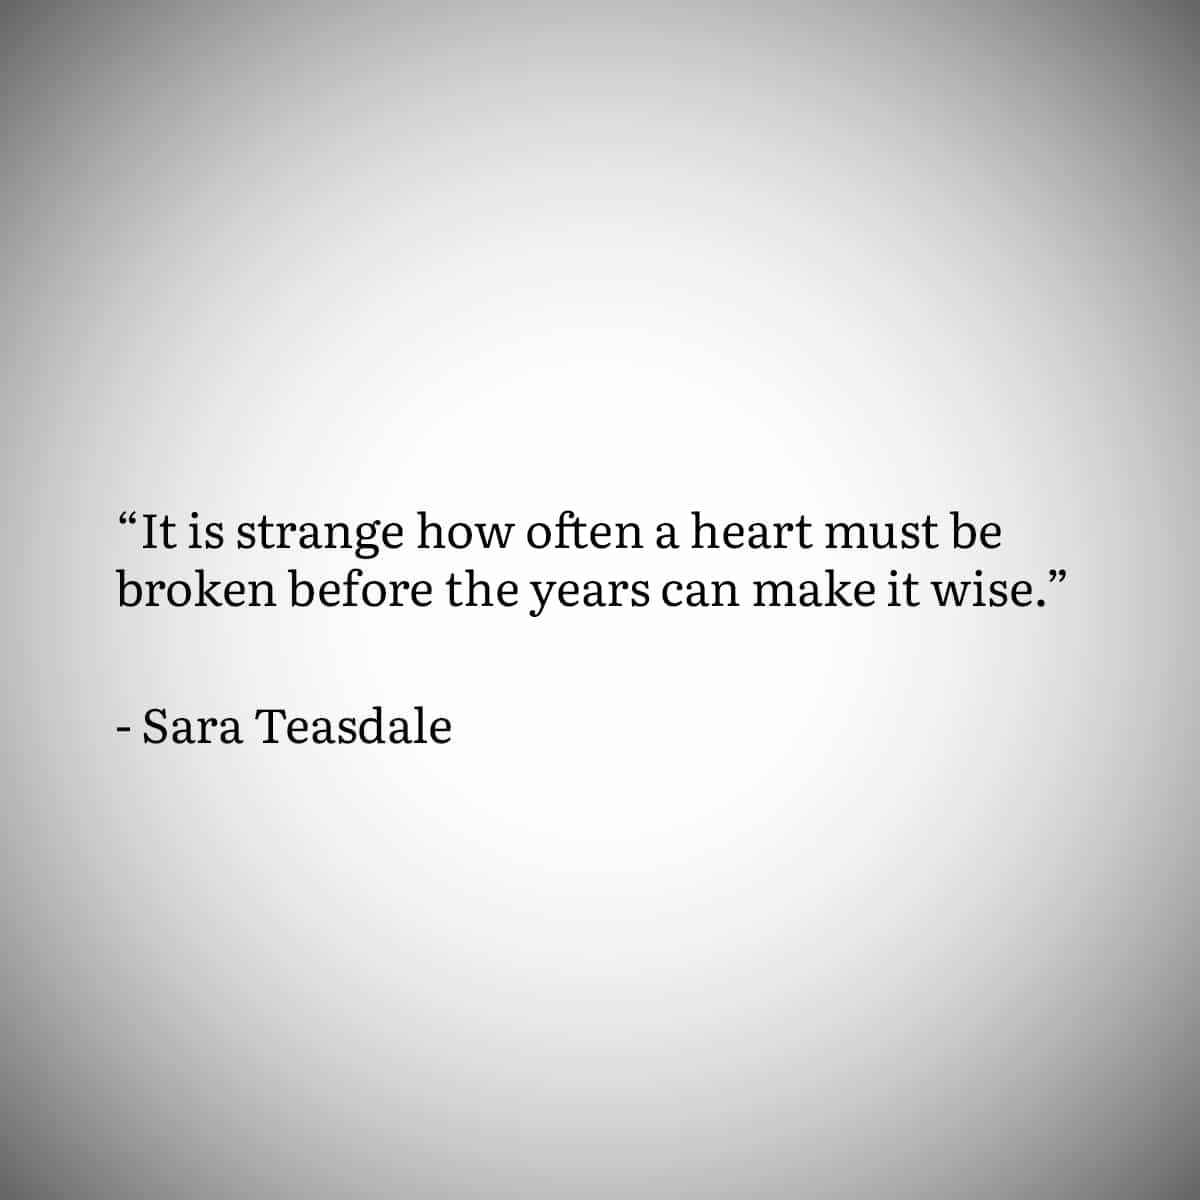 """Broken Heart Quote 7: """"It is strange how often a heart must be broken before the years can make it wise."""" by Sara Teasdale"""